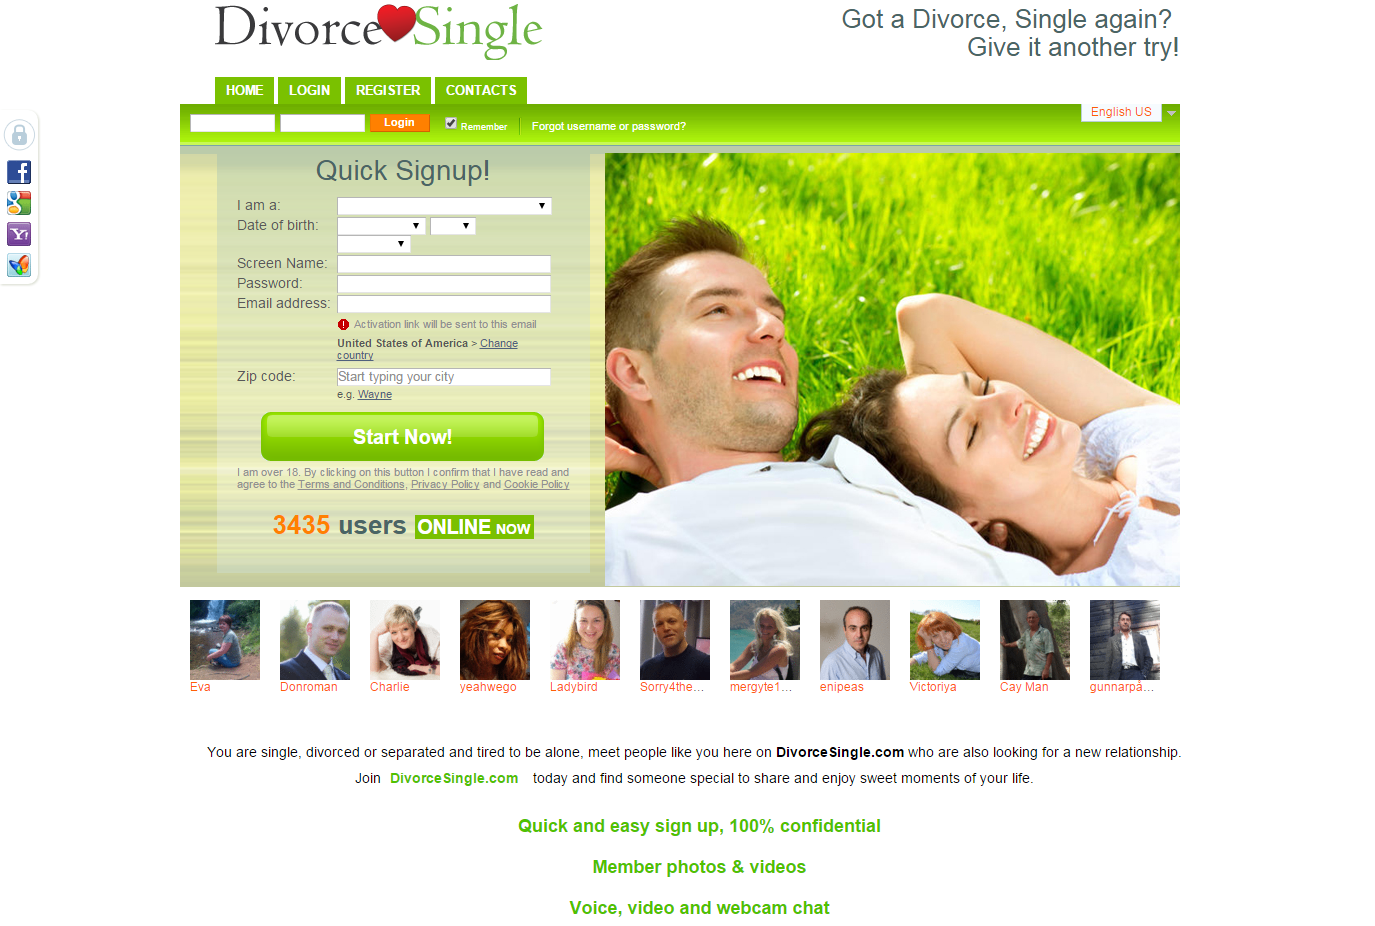 elkhart divorced singles dating site Elkhart's best 100% free divorced singles dating site meet thousands of divorced singles in elkhart with mingle2's free divorced singles personal ads and chat rooms our network of single men and women in elkhart is the perfect place to make friends or find a boyfriend or girlfriend in elkhart.